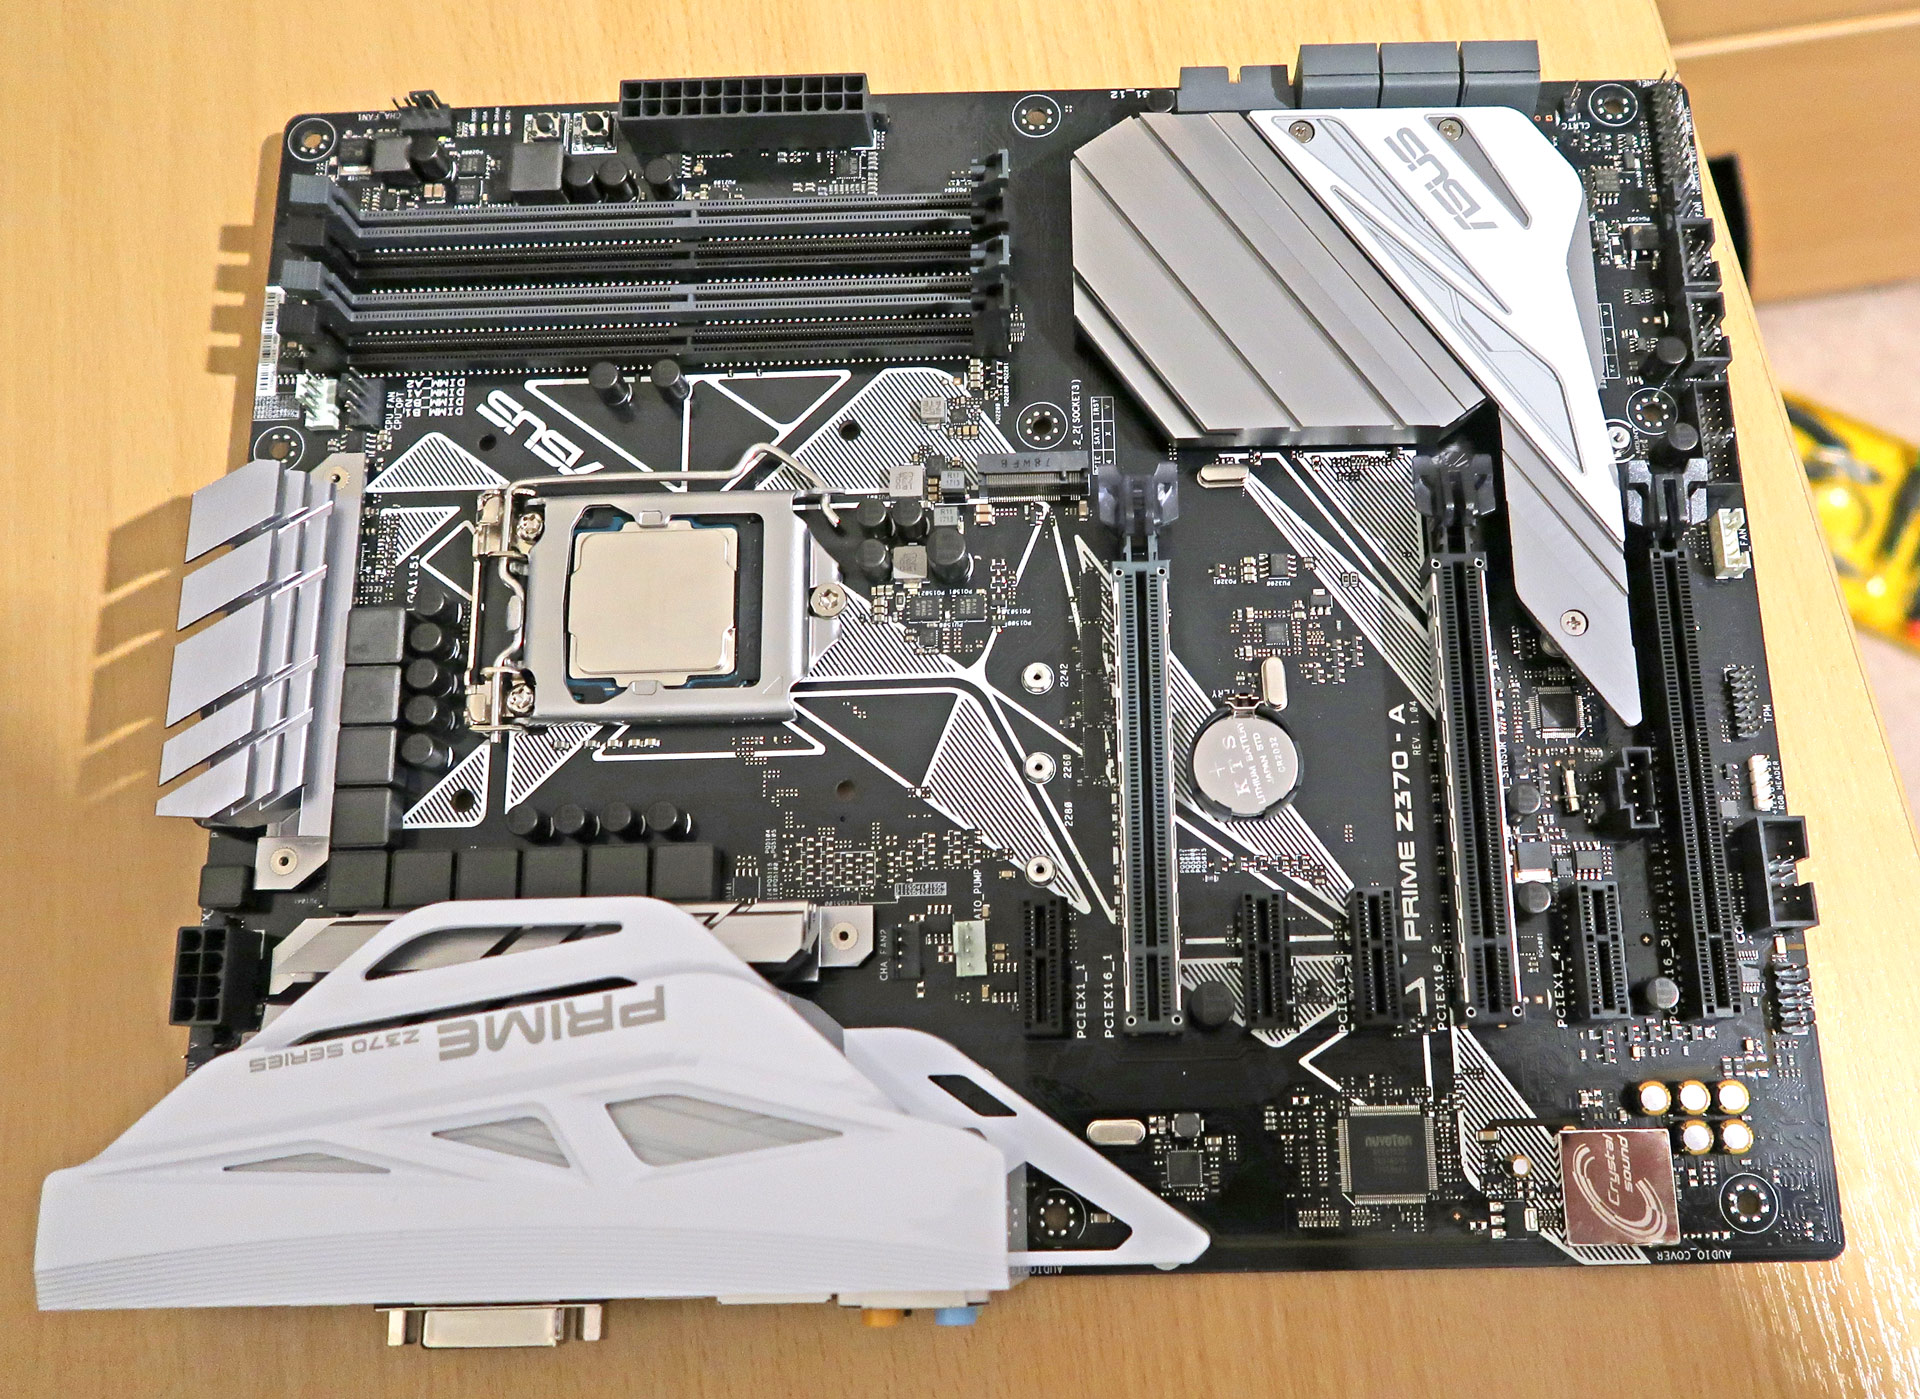 Asus Z370 Prime-A Motherboard - Suitable for Intel i7 8700K